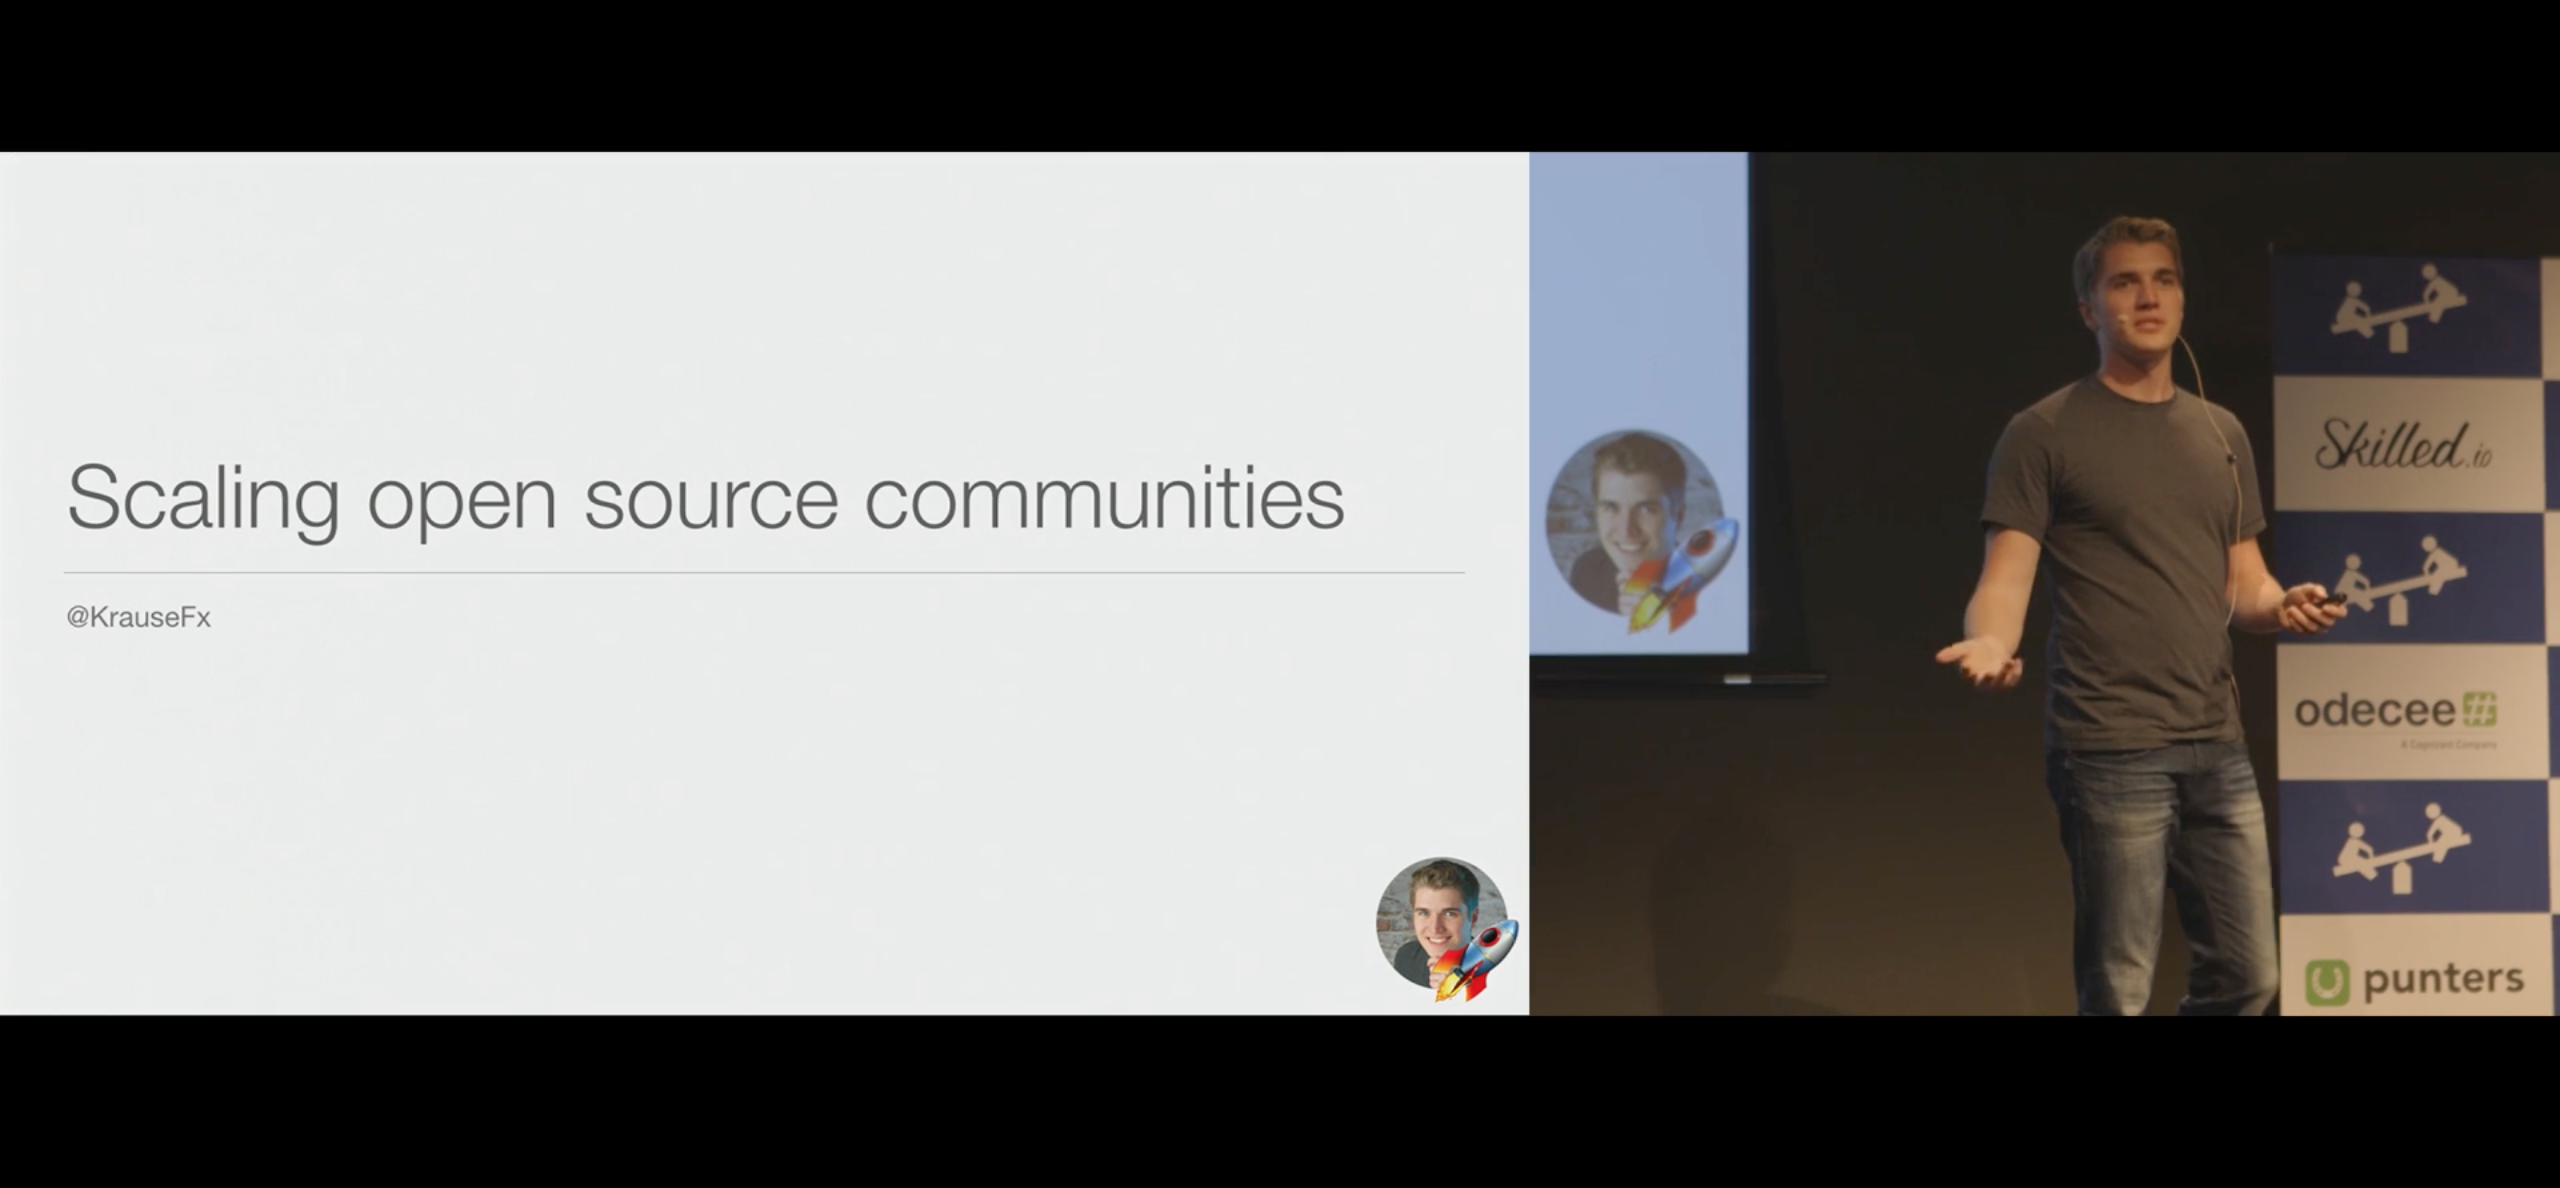 Scaling open source communities | Skilled io, the Swift